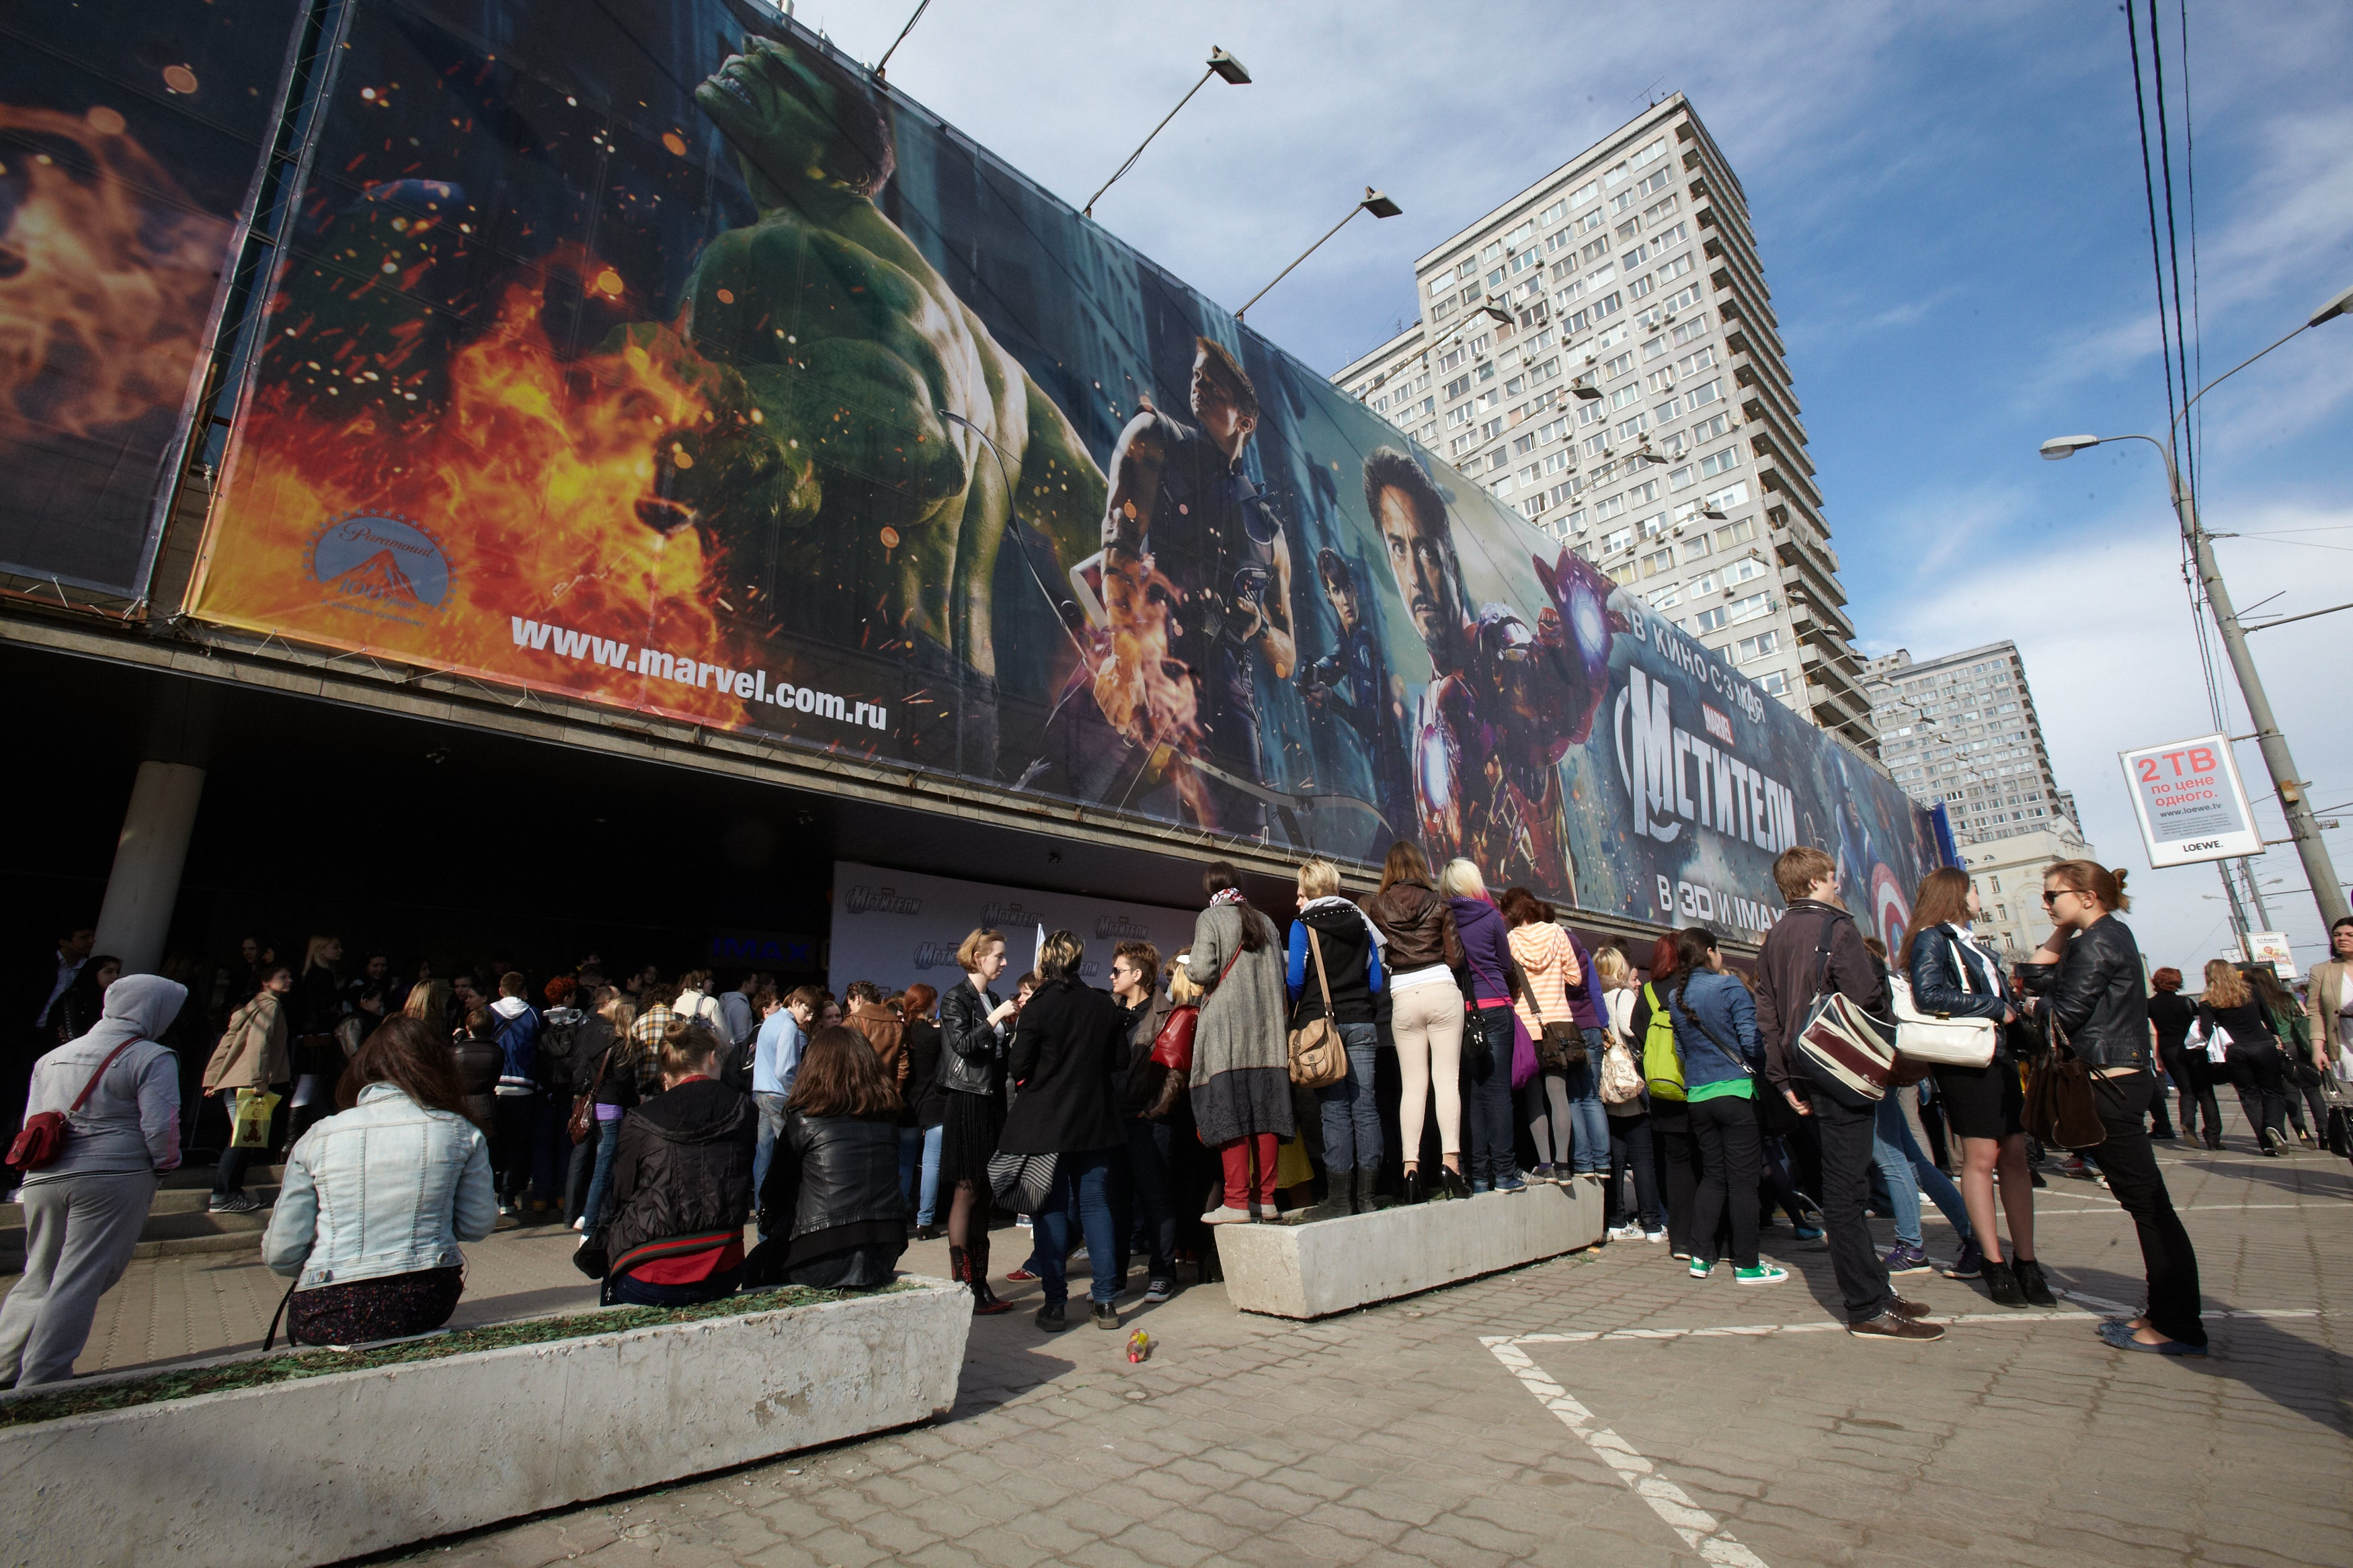 Marvel 'The Avengers'  Moscow, premiere